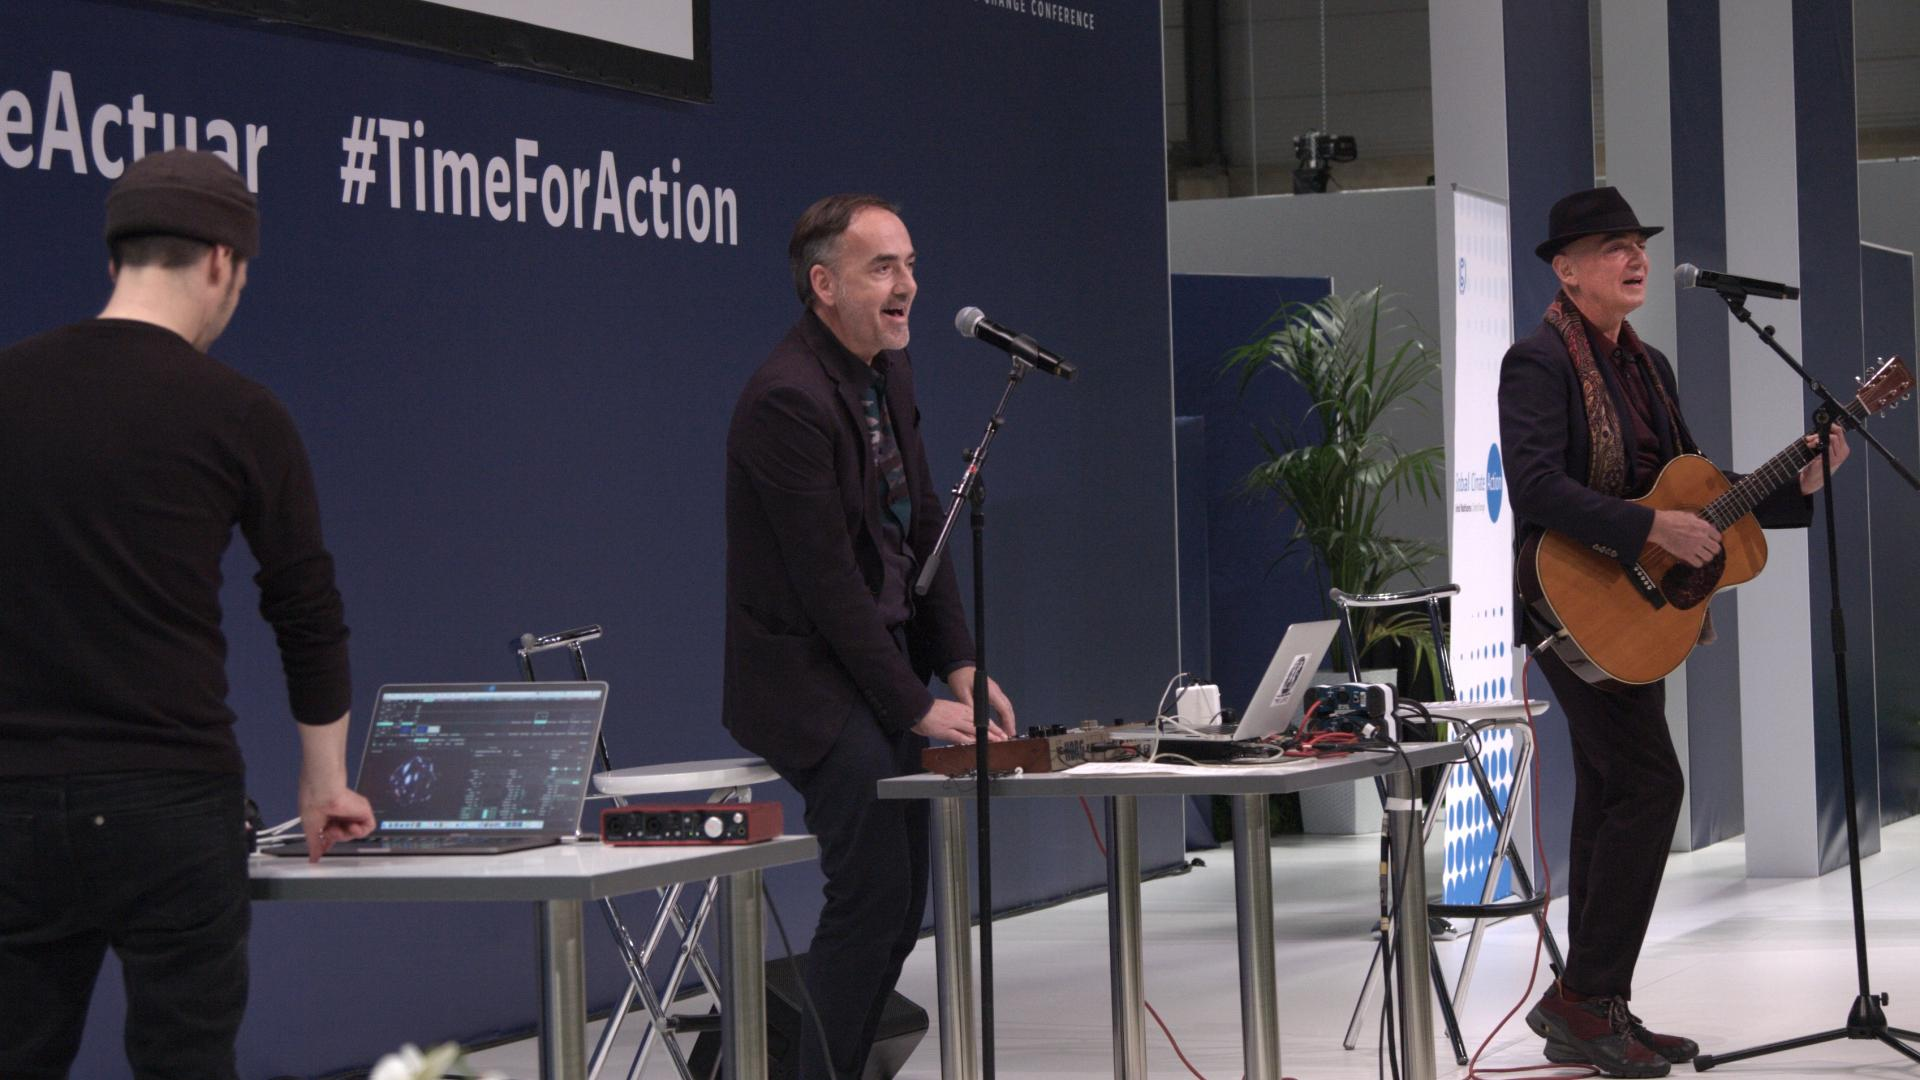 Müller & Makaroff play excerpts of Antropoceno at the climate change conference COP 25 in Madrid